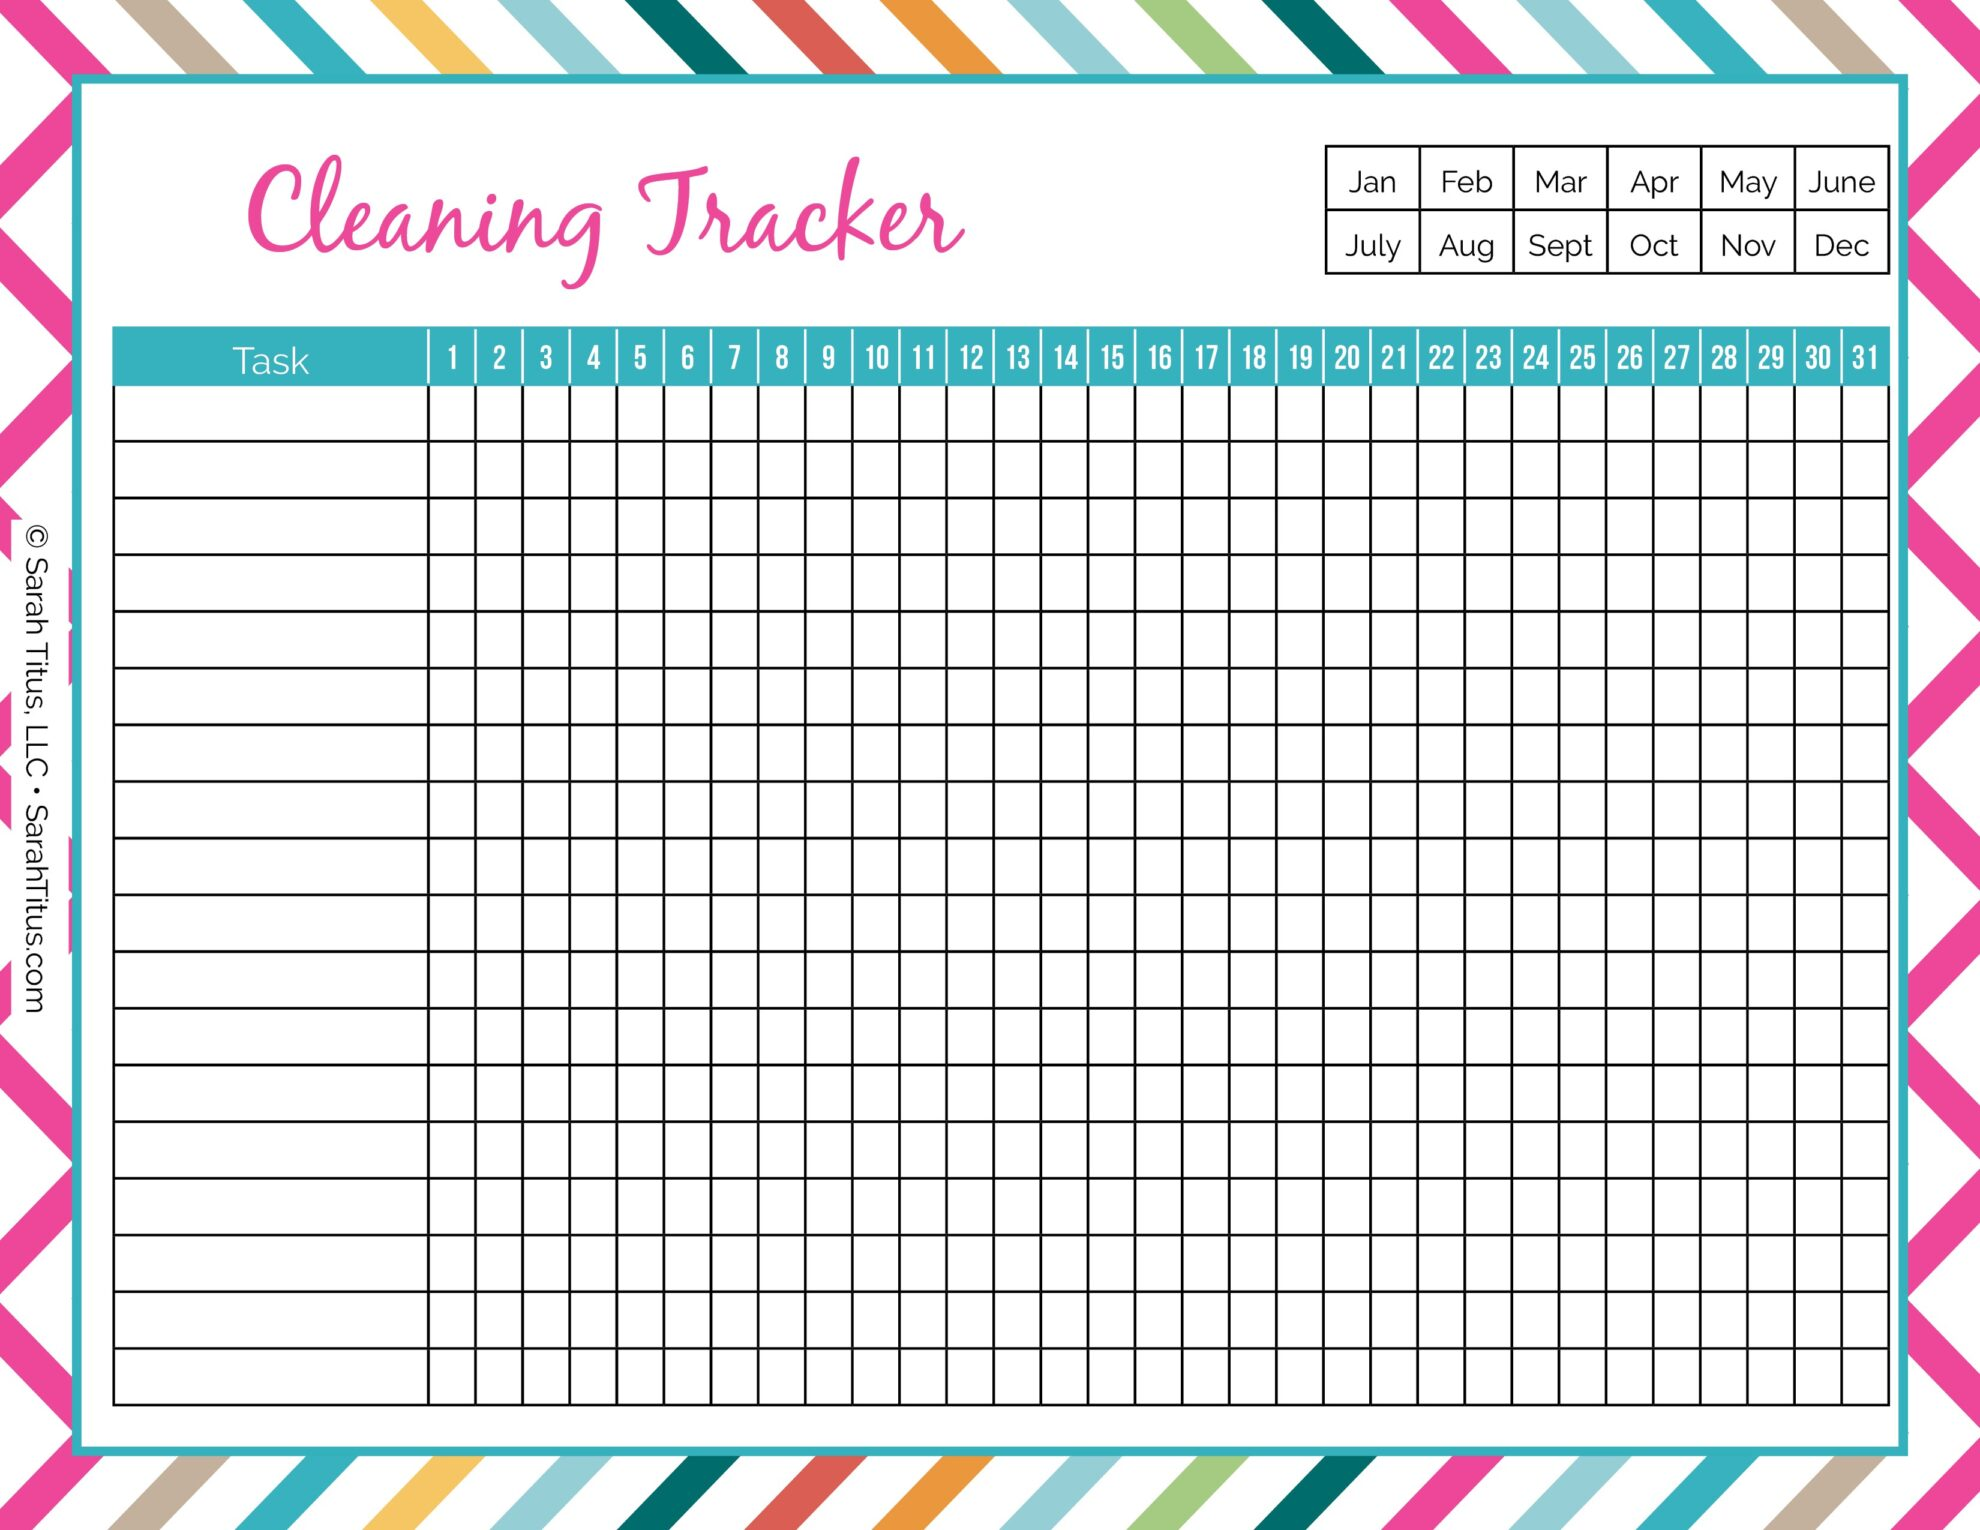 photograph about Free Printable Organizing Sheets named Cleansing Binder: Cleansing Tracker - Sarah Titus